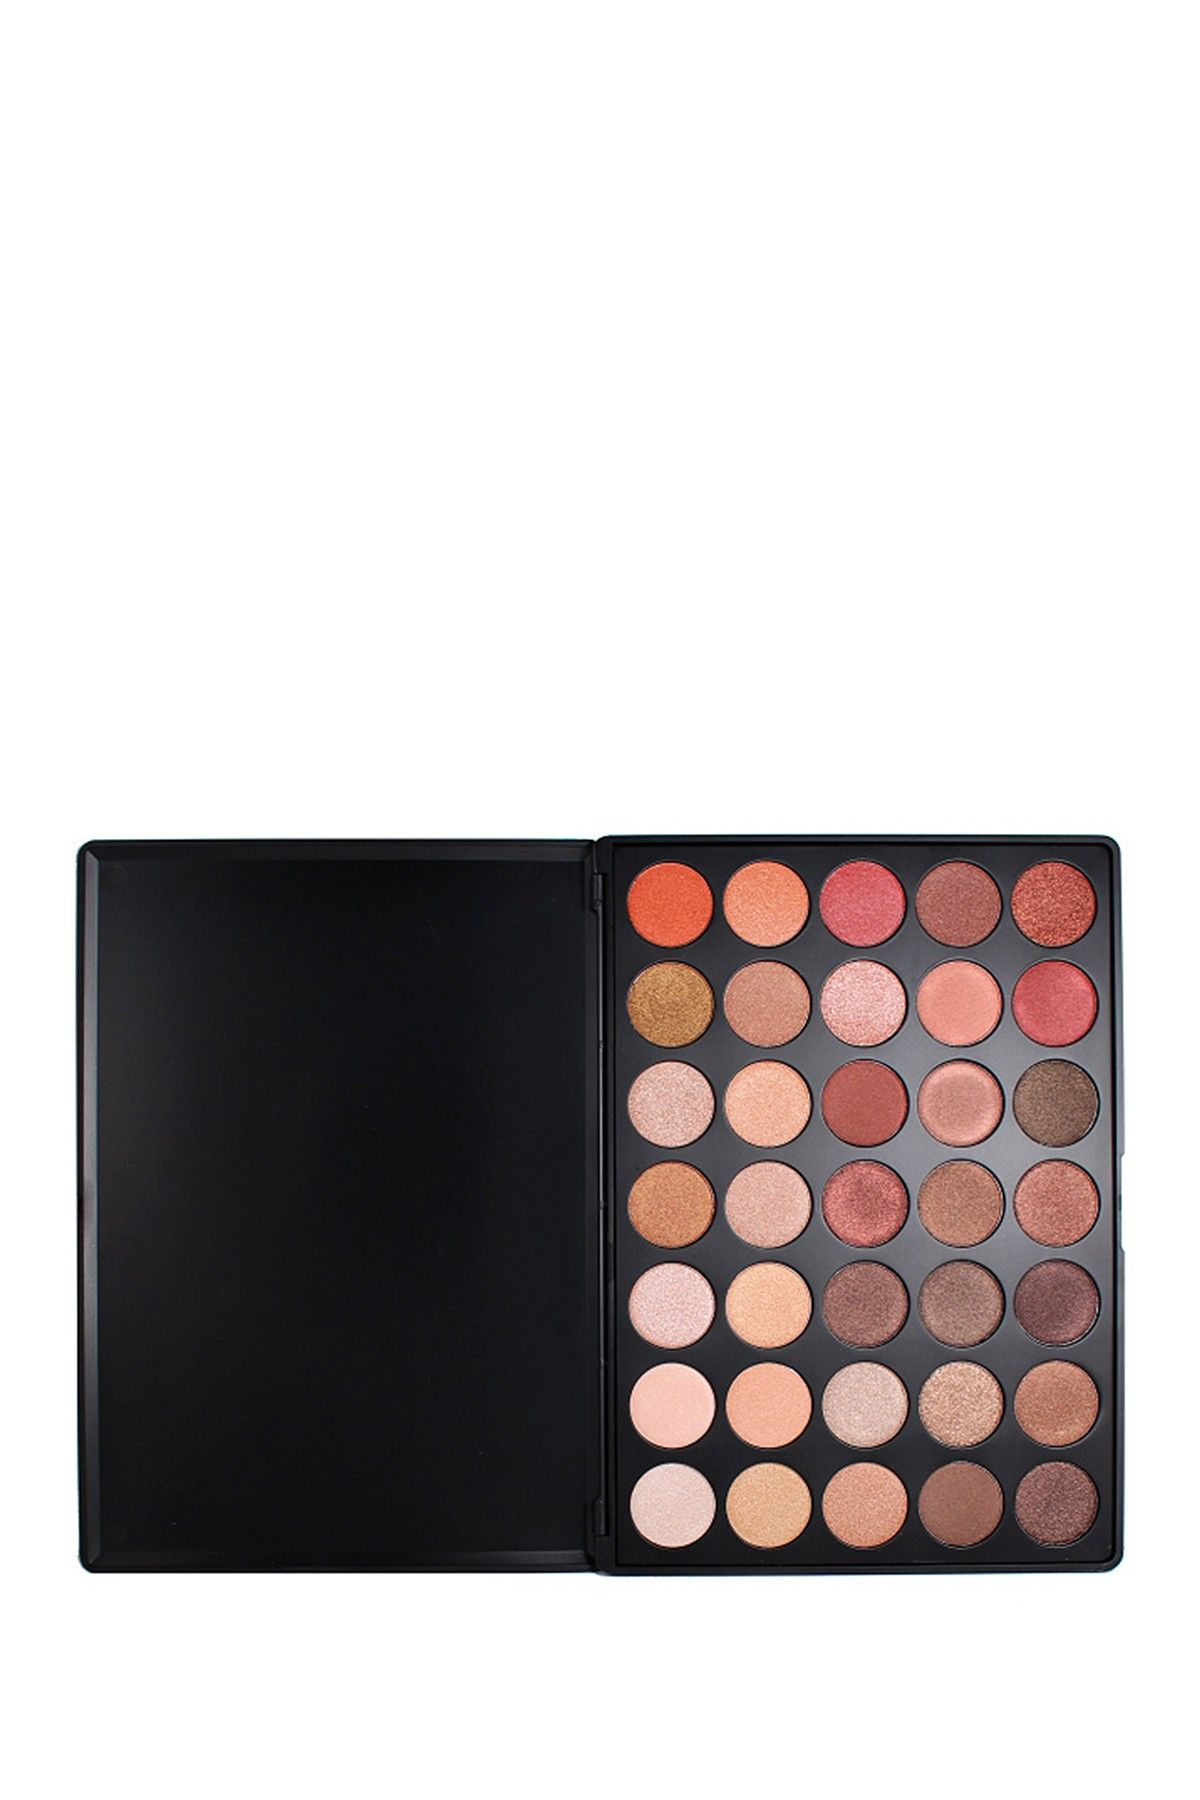 Obsessed with this Morphe 35OS 5 Color Shimmer Nature